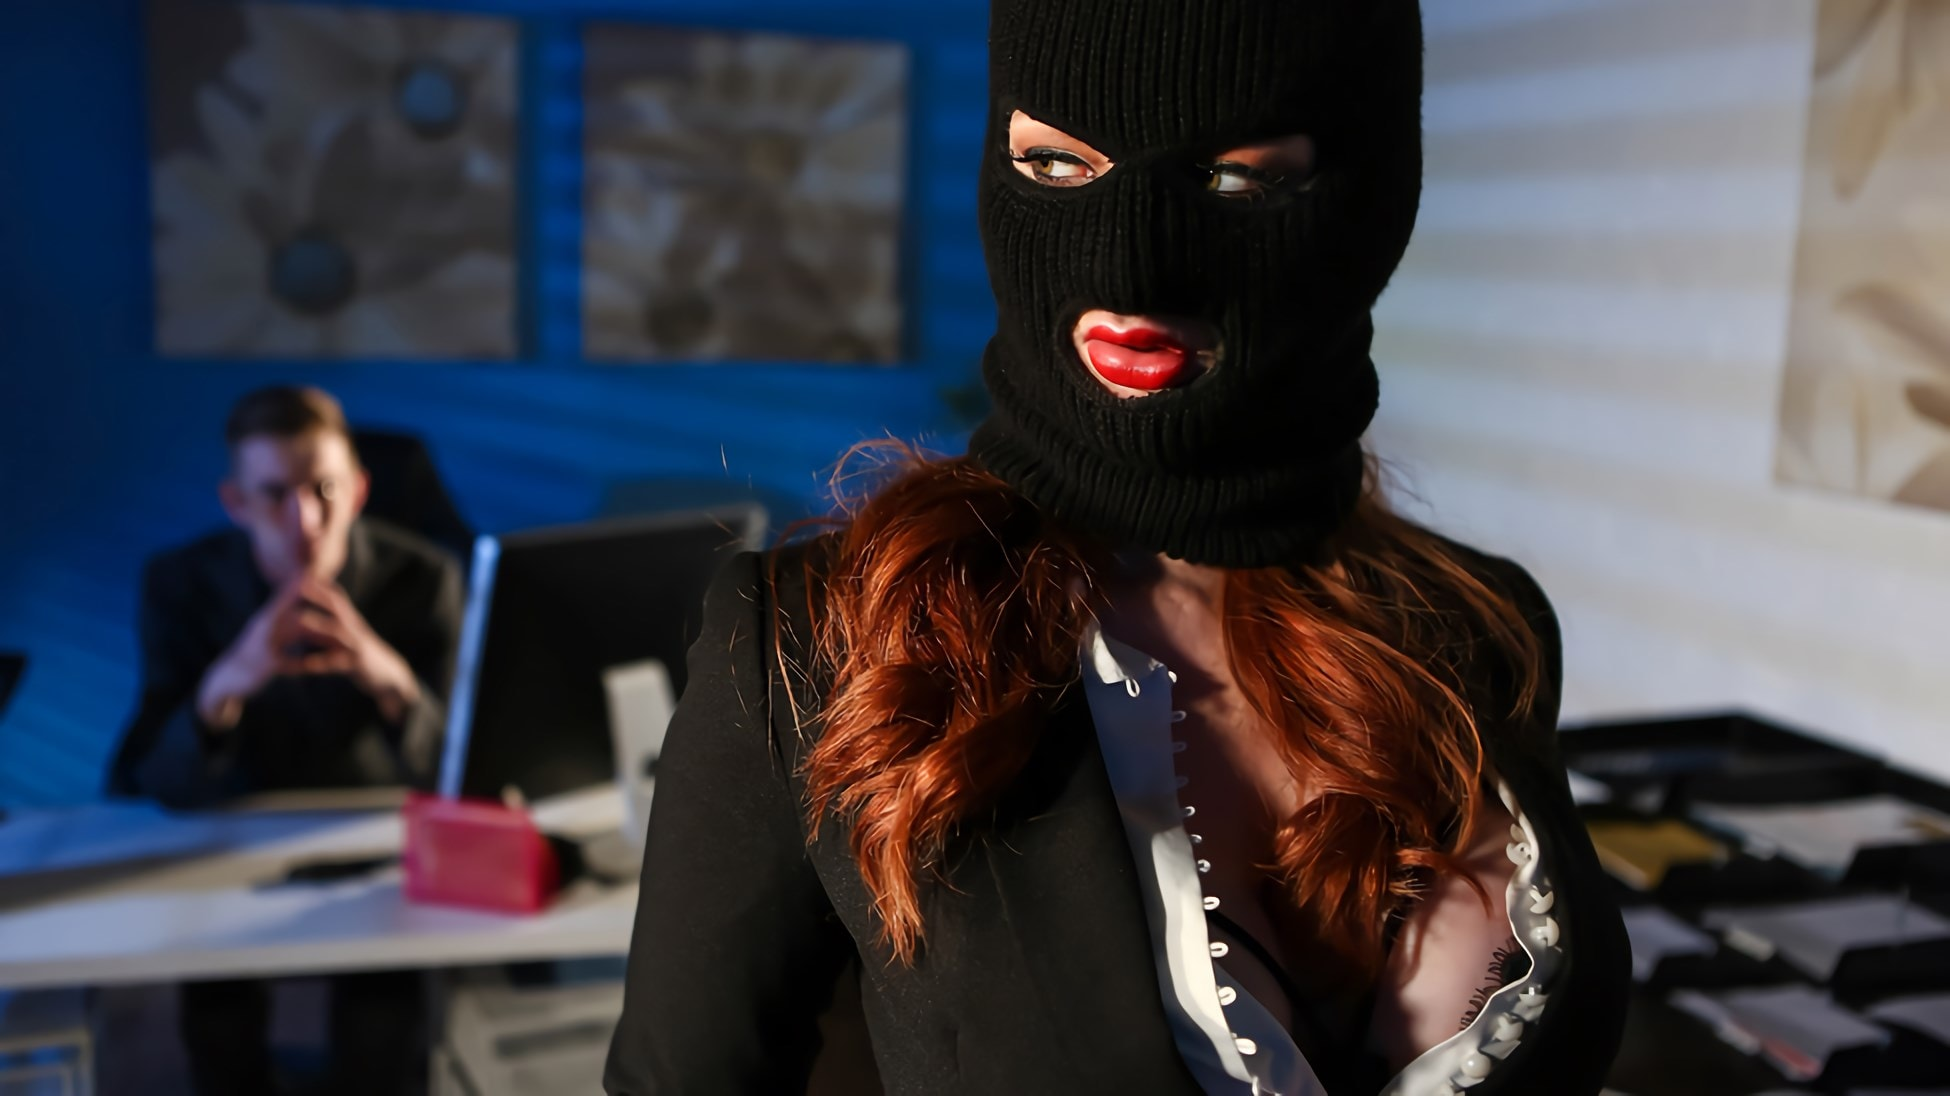 Brazzers 'Corporate Espionage' starring Zara DuRose (photo 6)